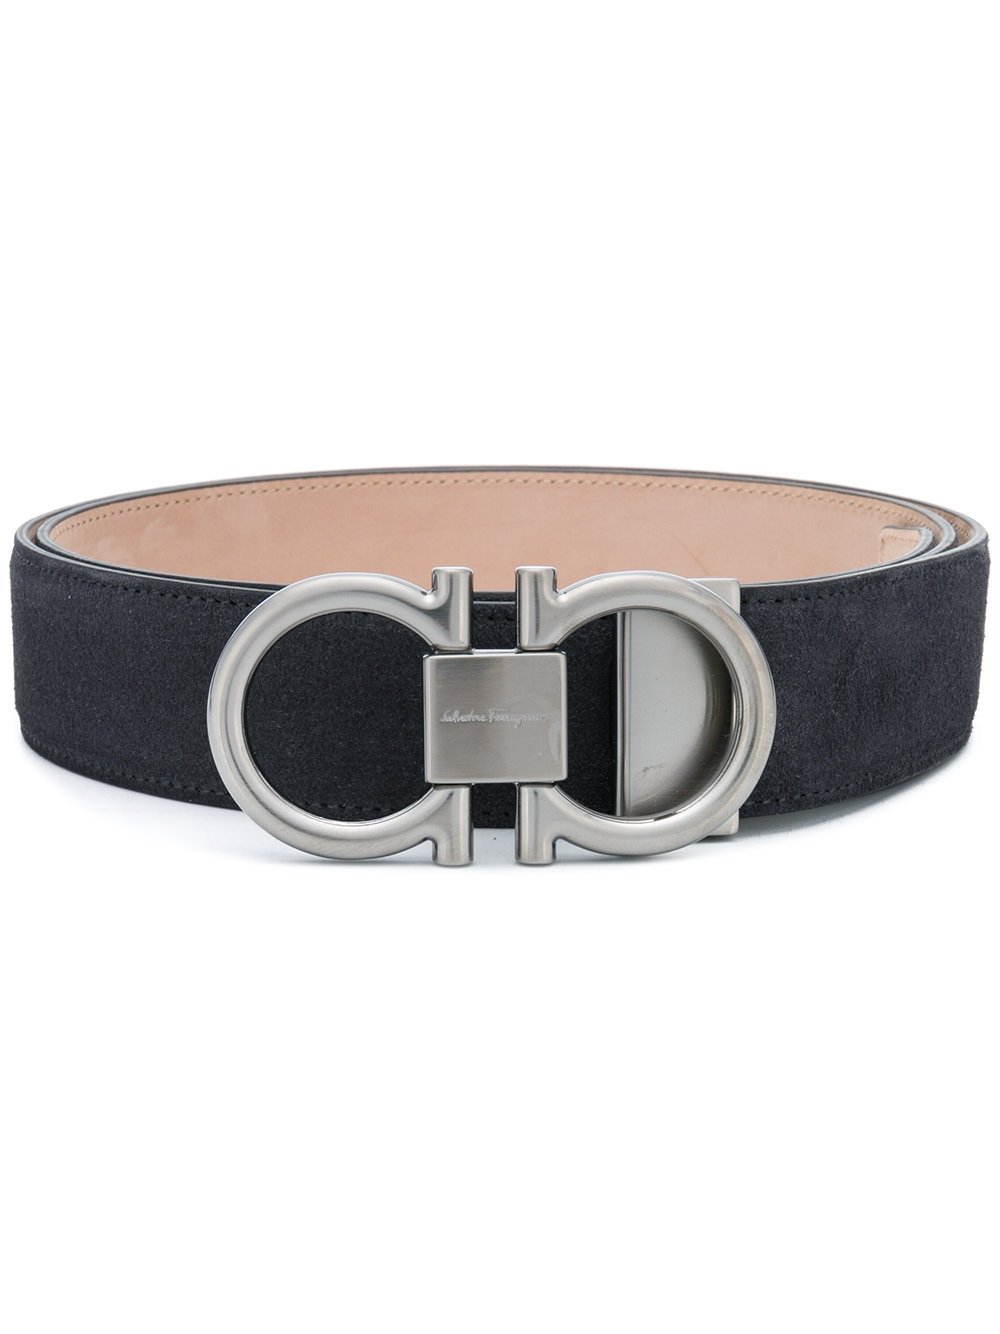 Salvatore Ferragamo double Gancio buckle belt - Grey - Glami.sk 34770923074